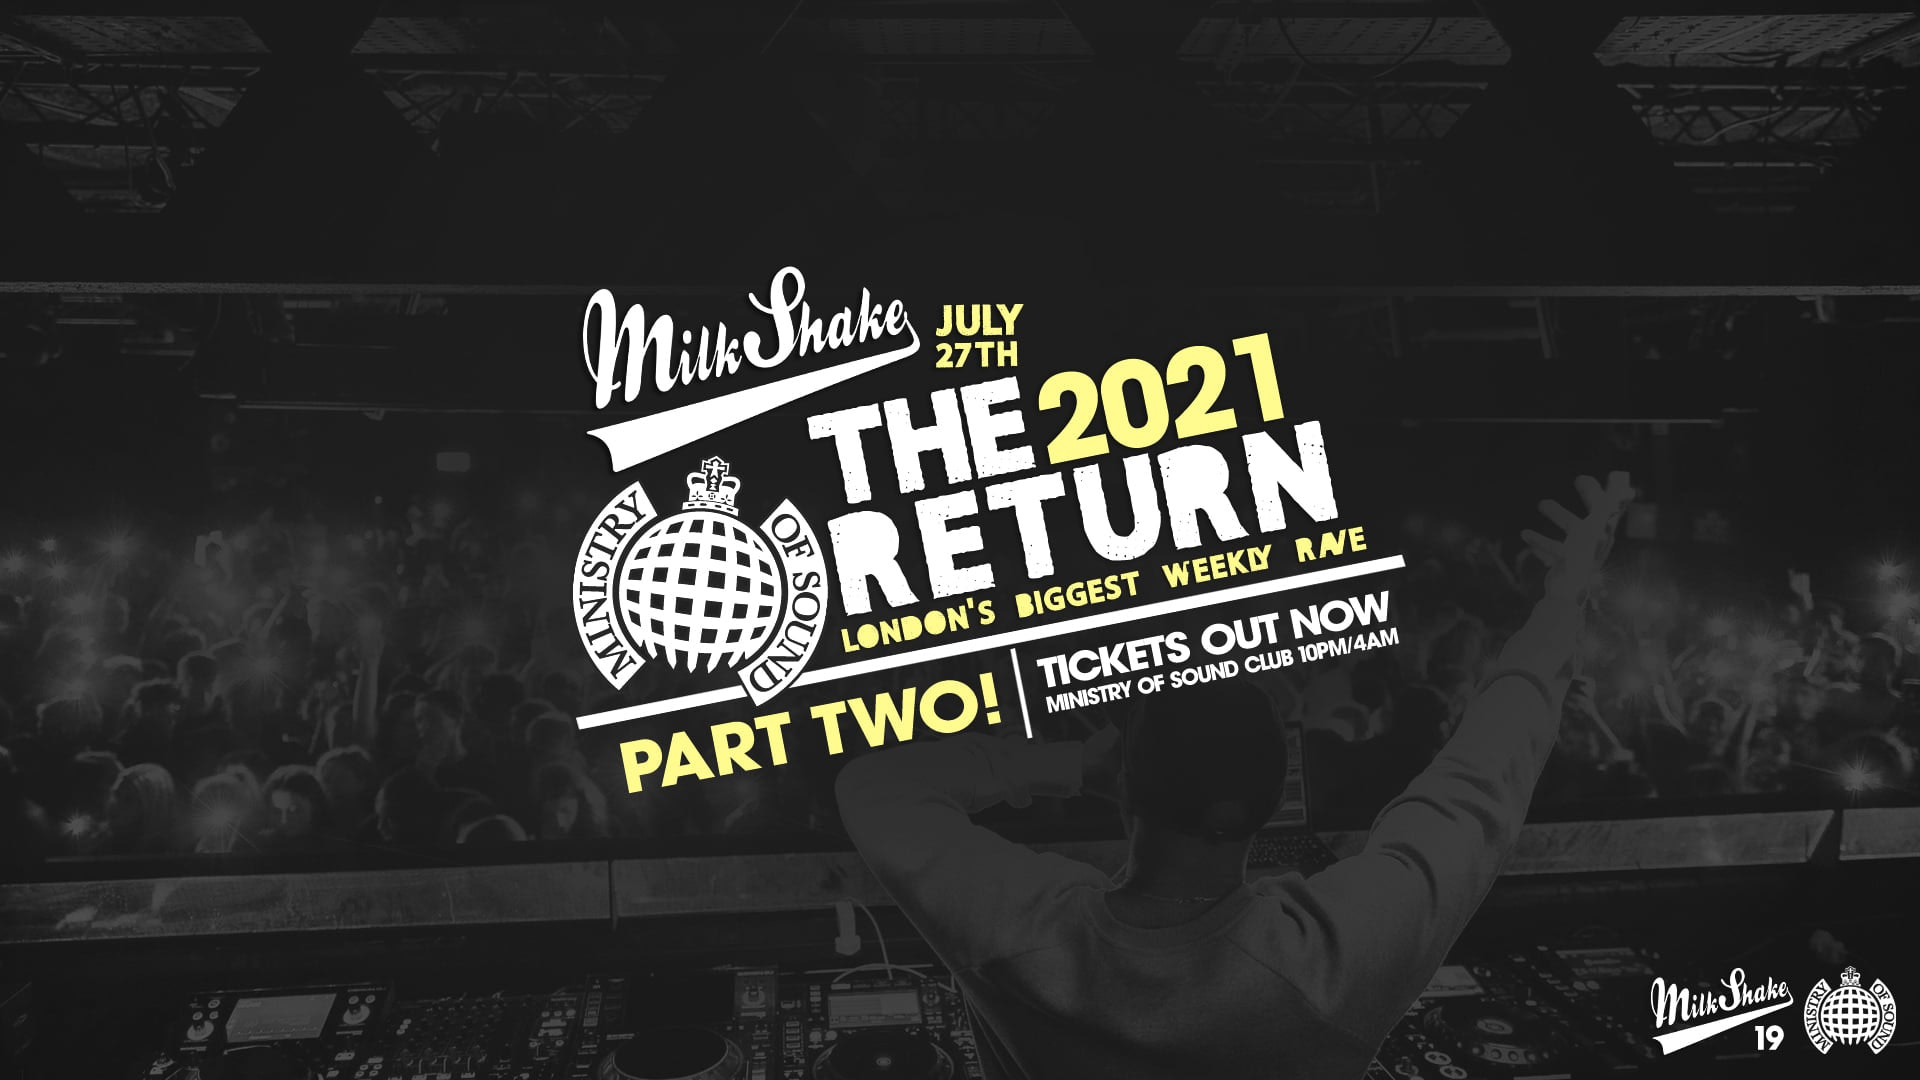 Ministry of Sound, Milkshake – The Official Return: PART 2  🔥  PART 1 SOLD OUT!